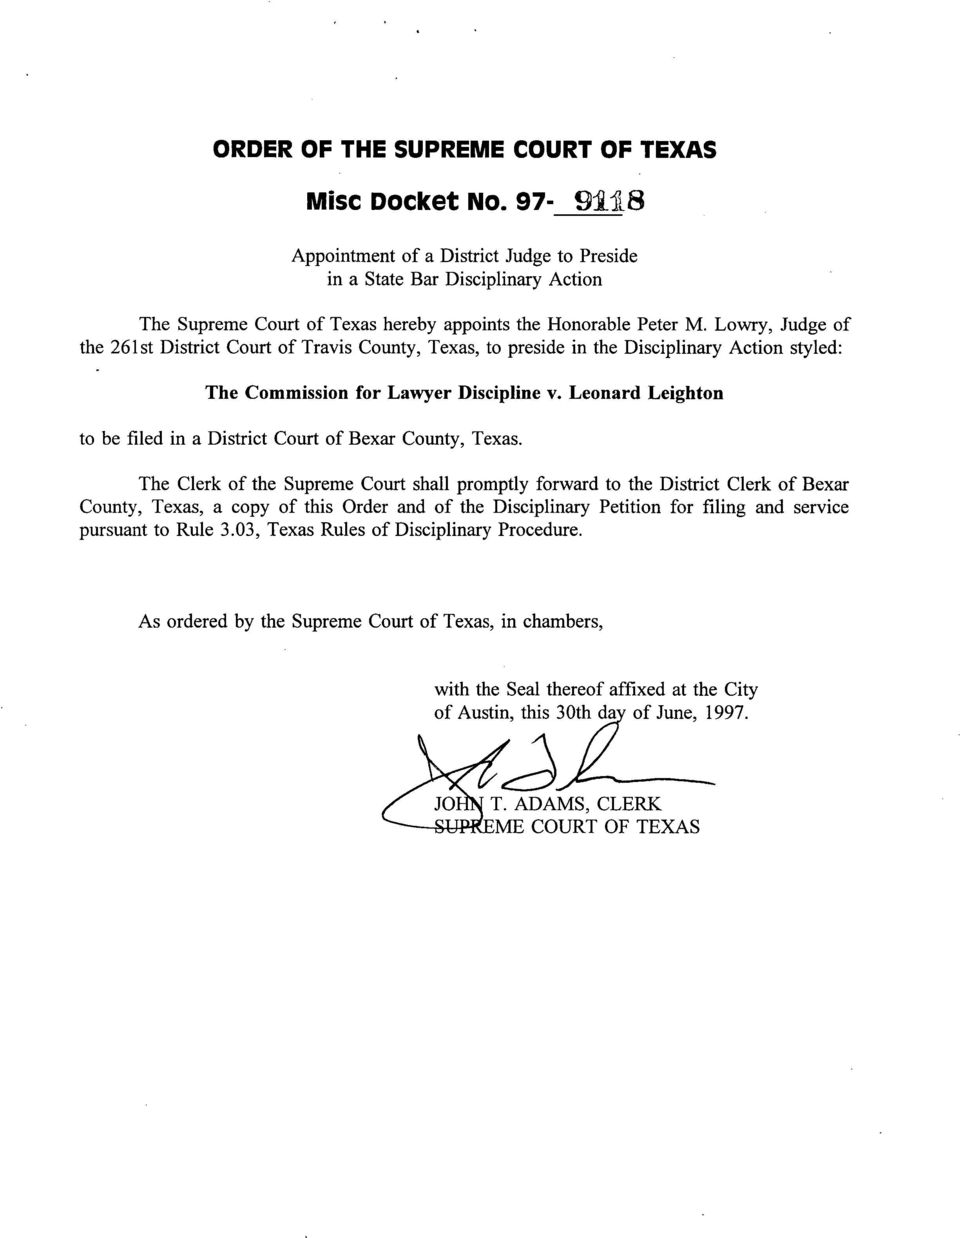 Leonard Leighton to be filed in a District Court of Bexar County, Texas.